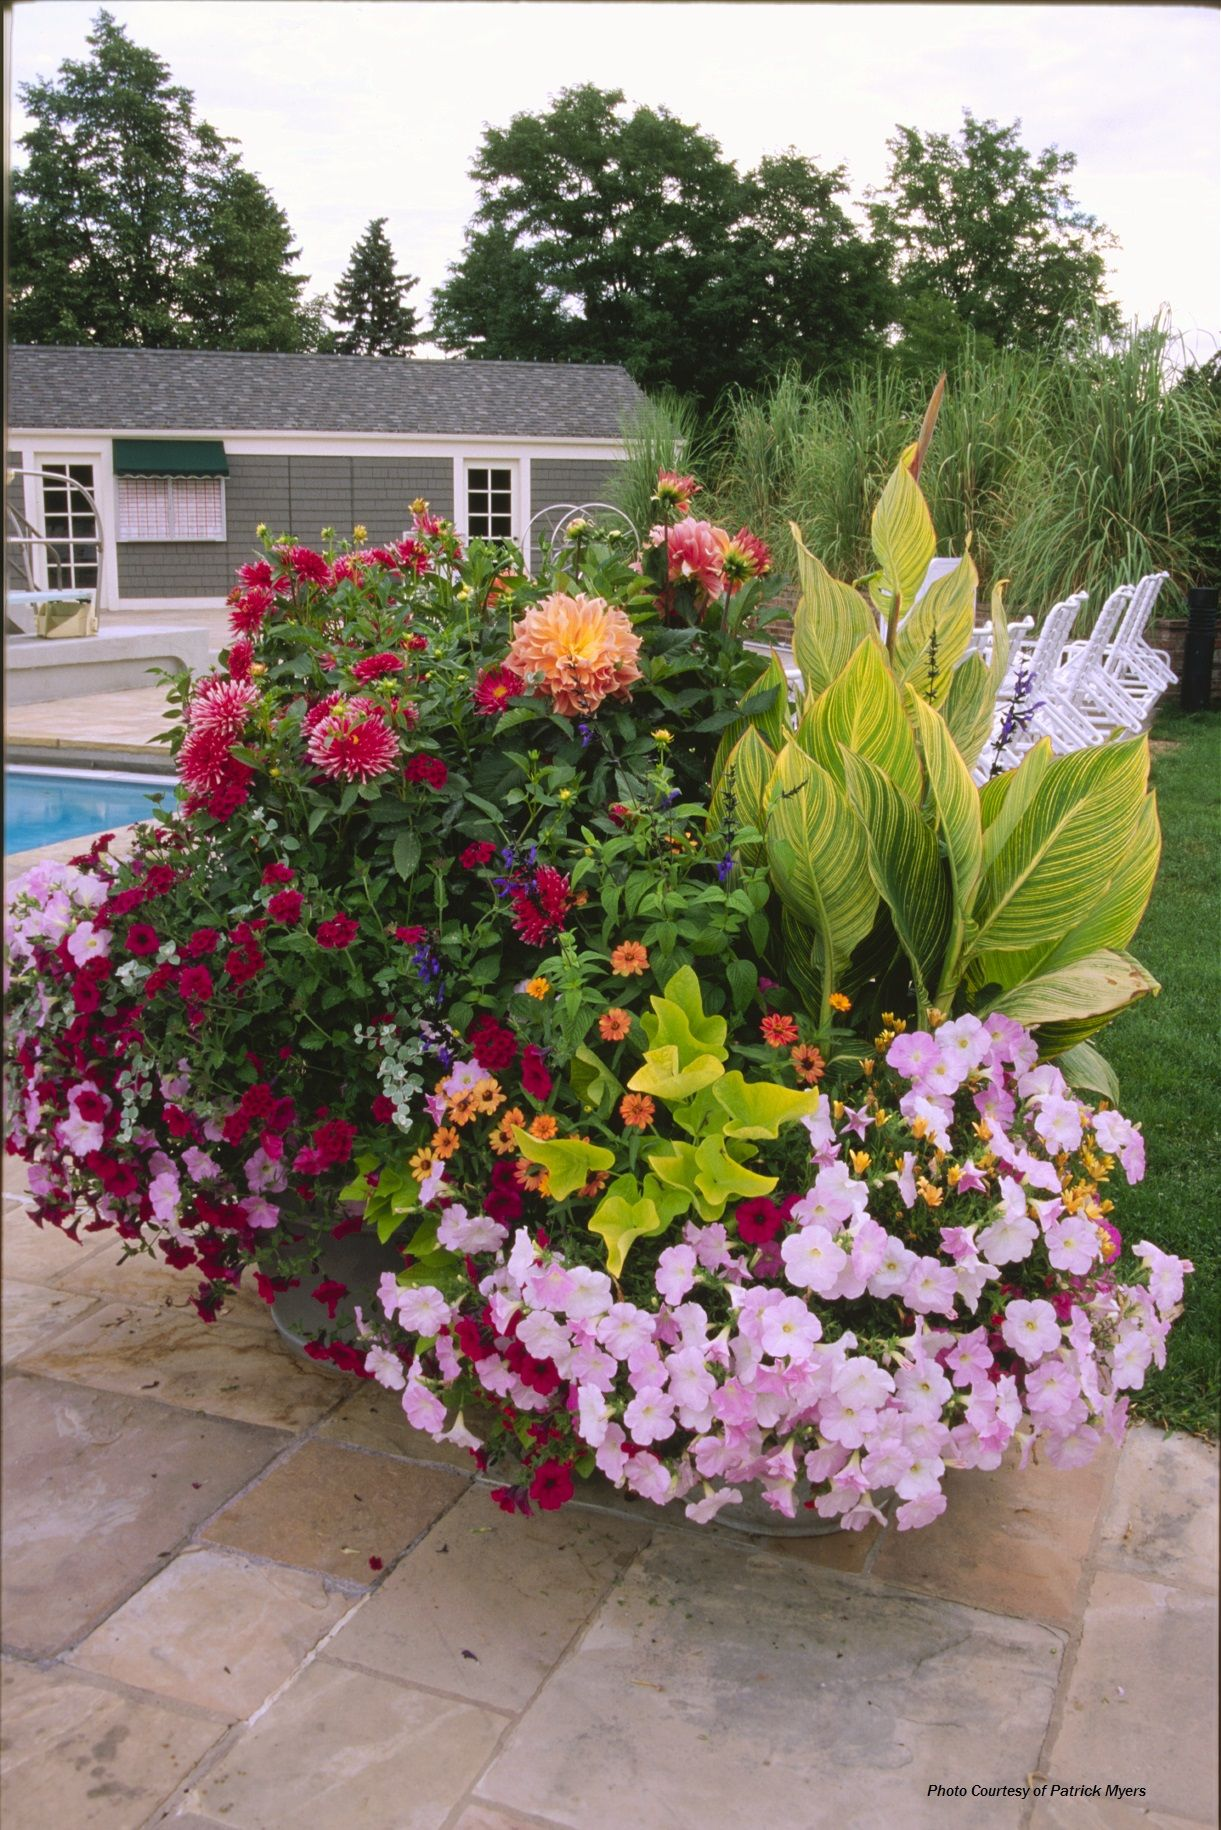 86d99fcfab01e0eed33756a21a8c408a - Vegetable Combination Ideas For Container Gardens